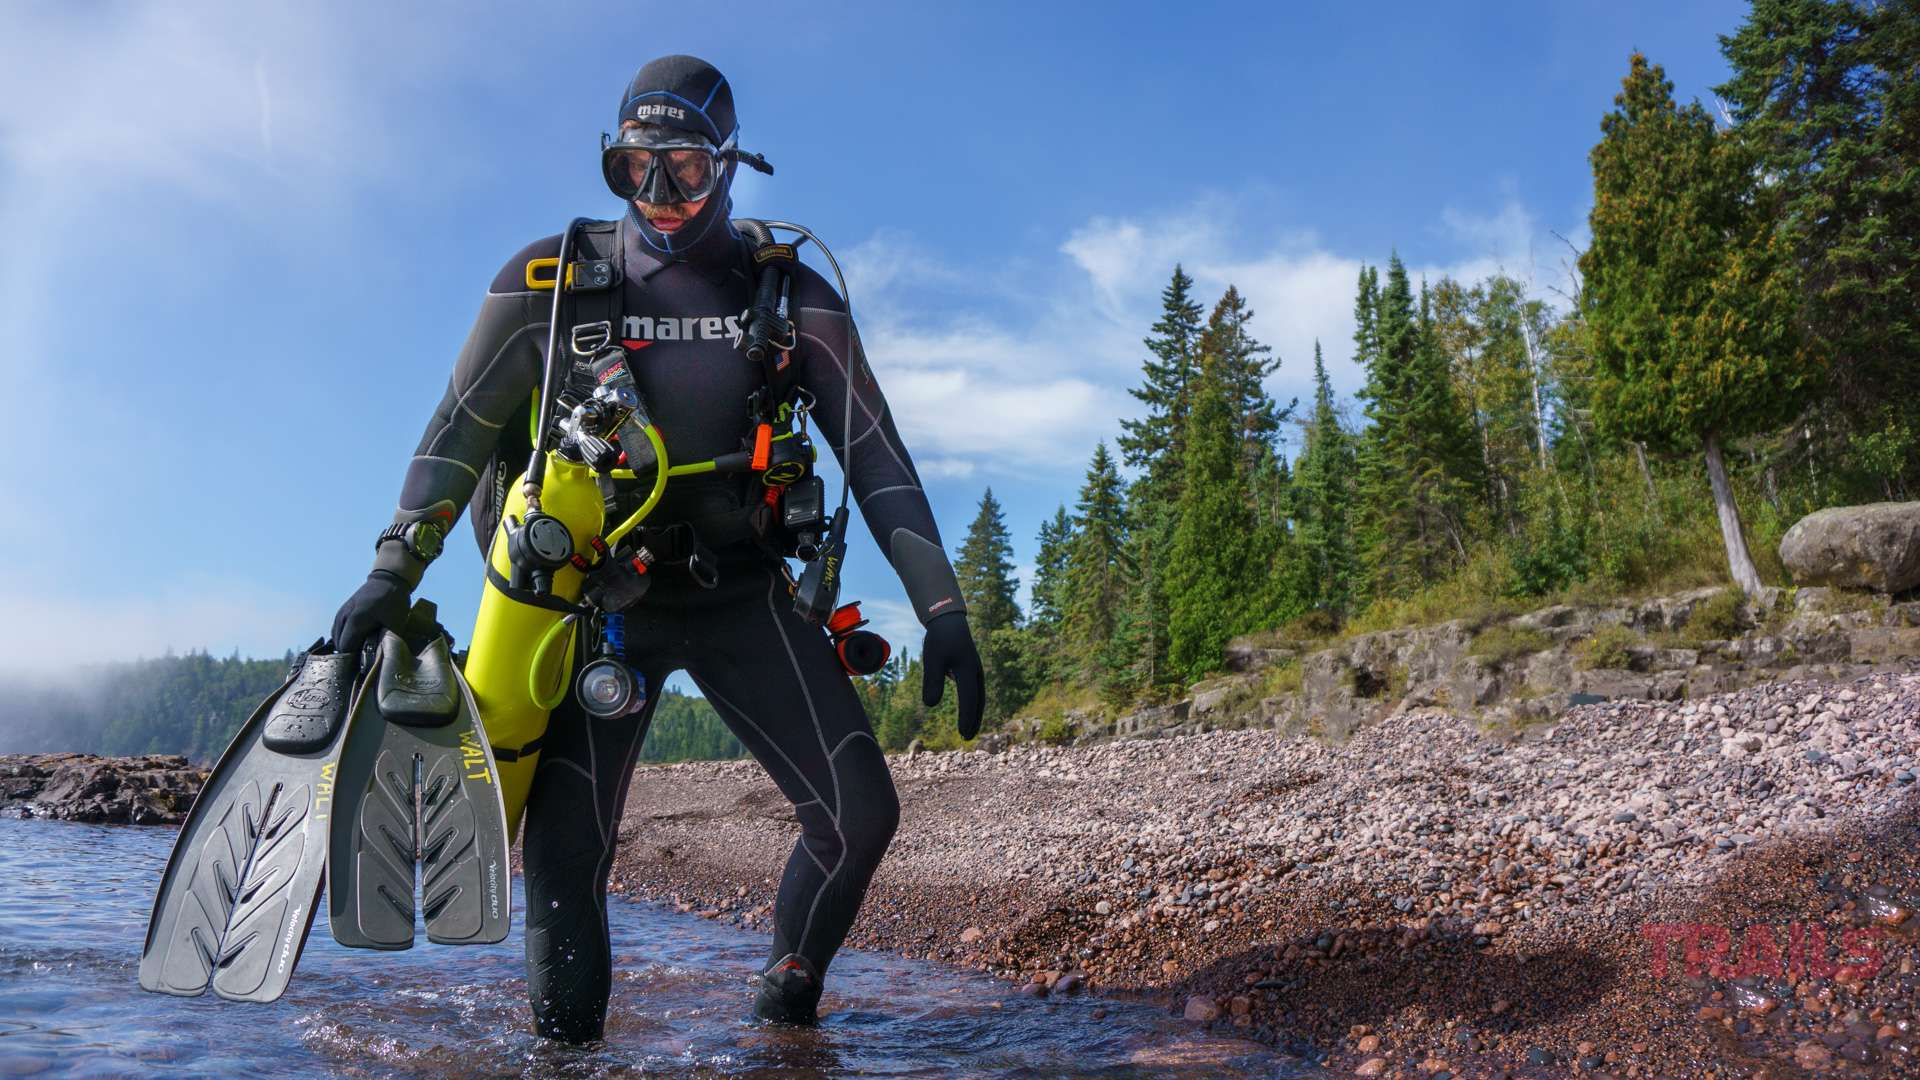 A man in a diving suit walks into the water carrying flippers